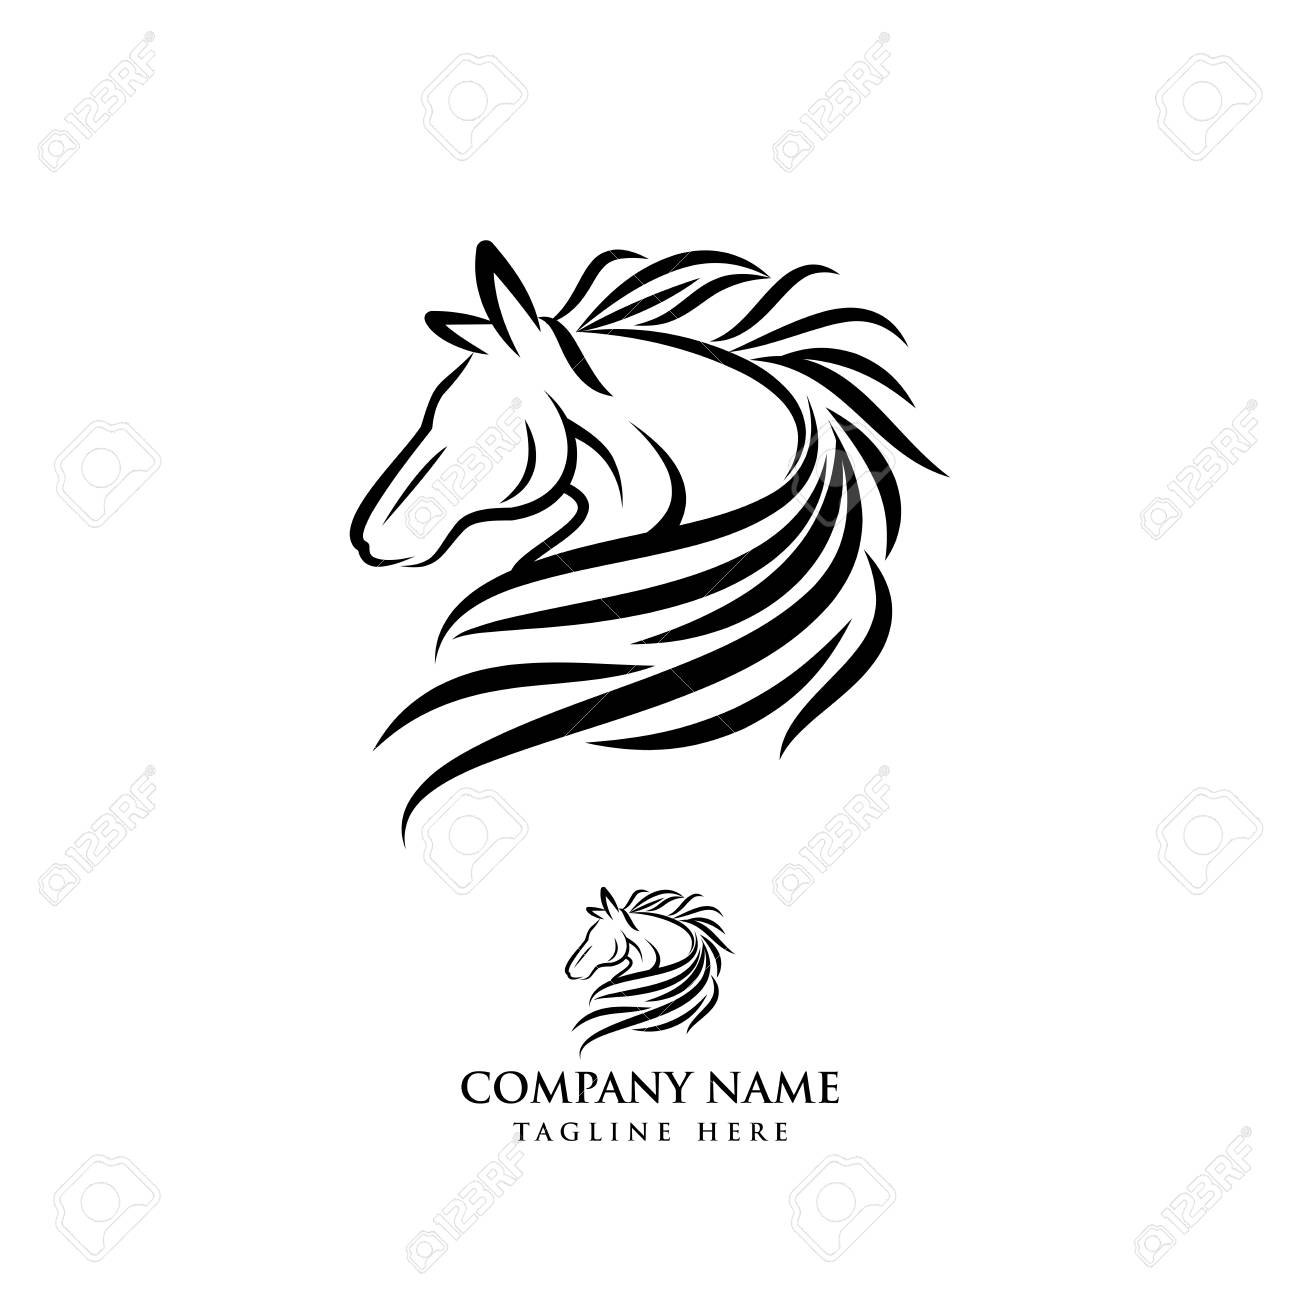 Horse Logo Design Illustration Horse Silhouette Vector Horse Royalty Free Cliparts Vectors And Stock Illustration Image 118779262